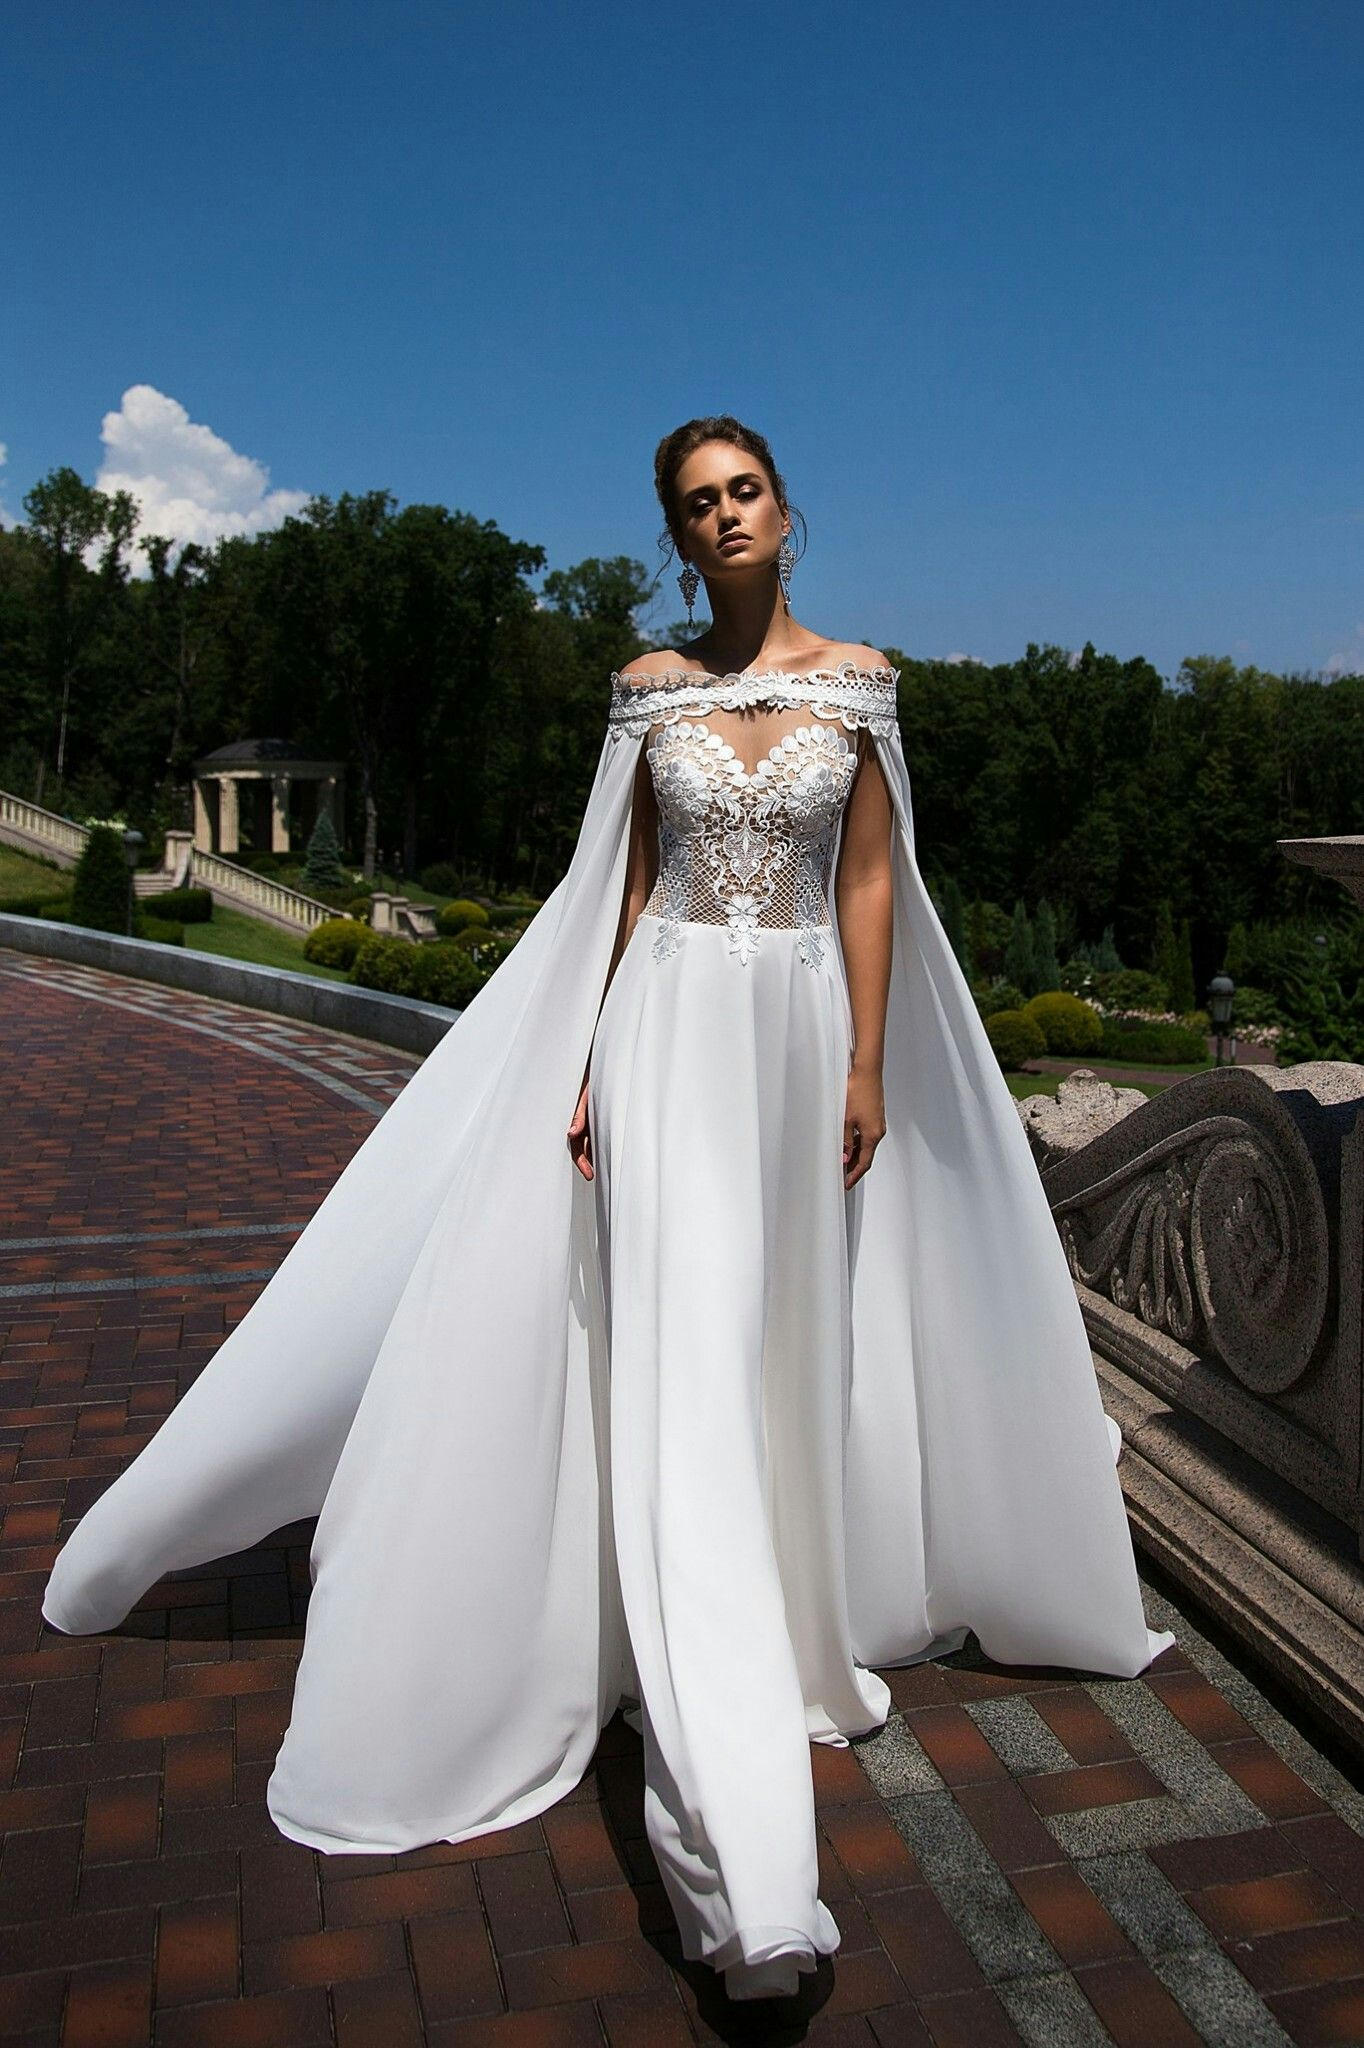 Elite wedding dresses  Pin by Vanda Desiree on Wedding dresses  Pinterest  Wedding